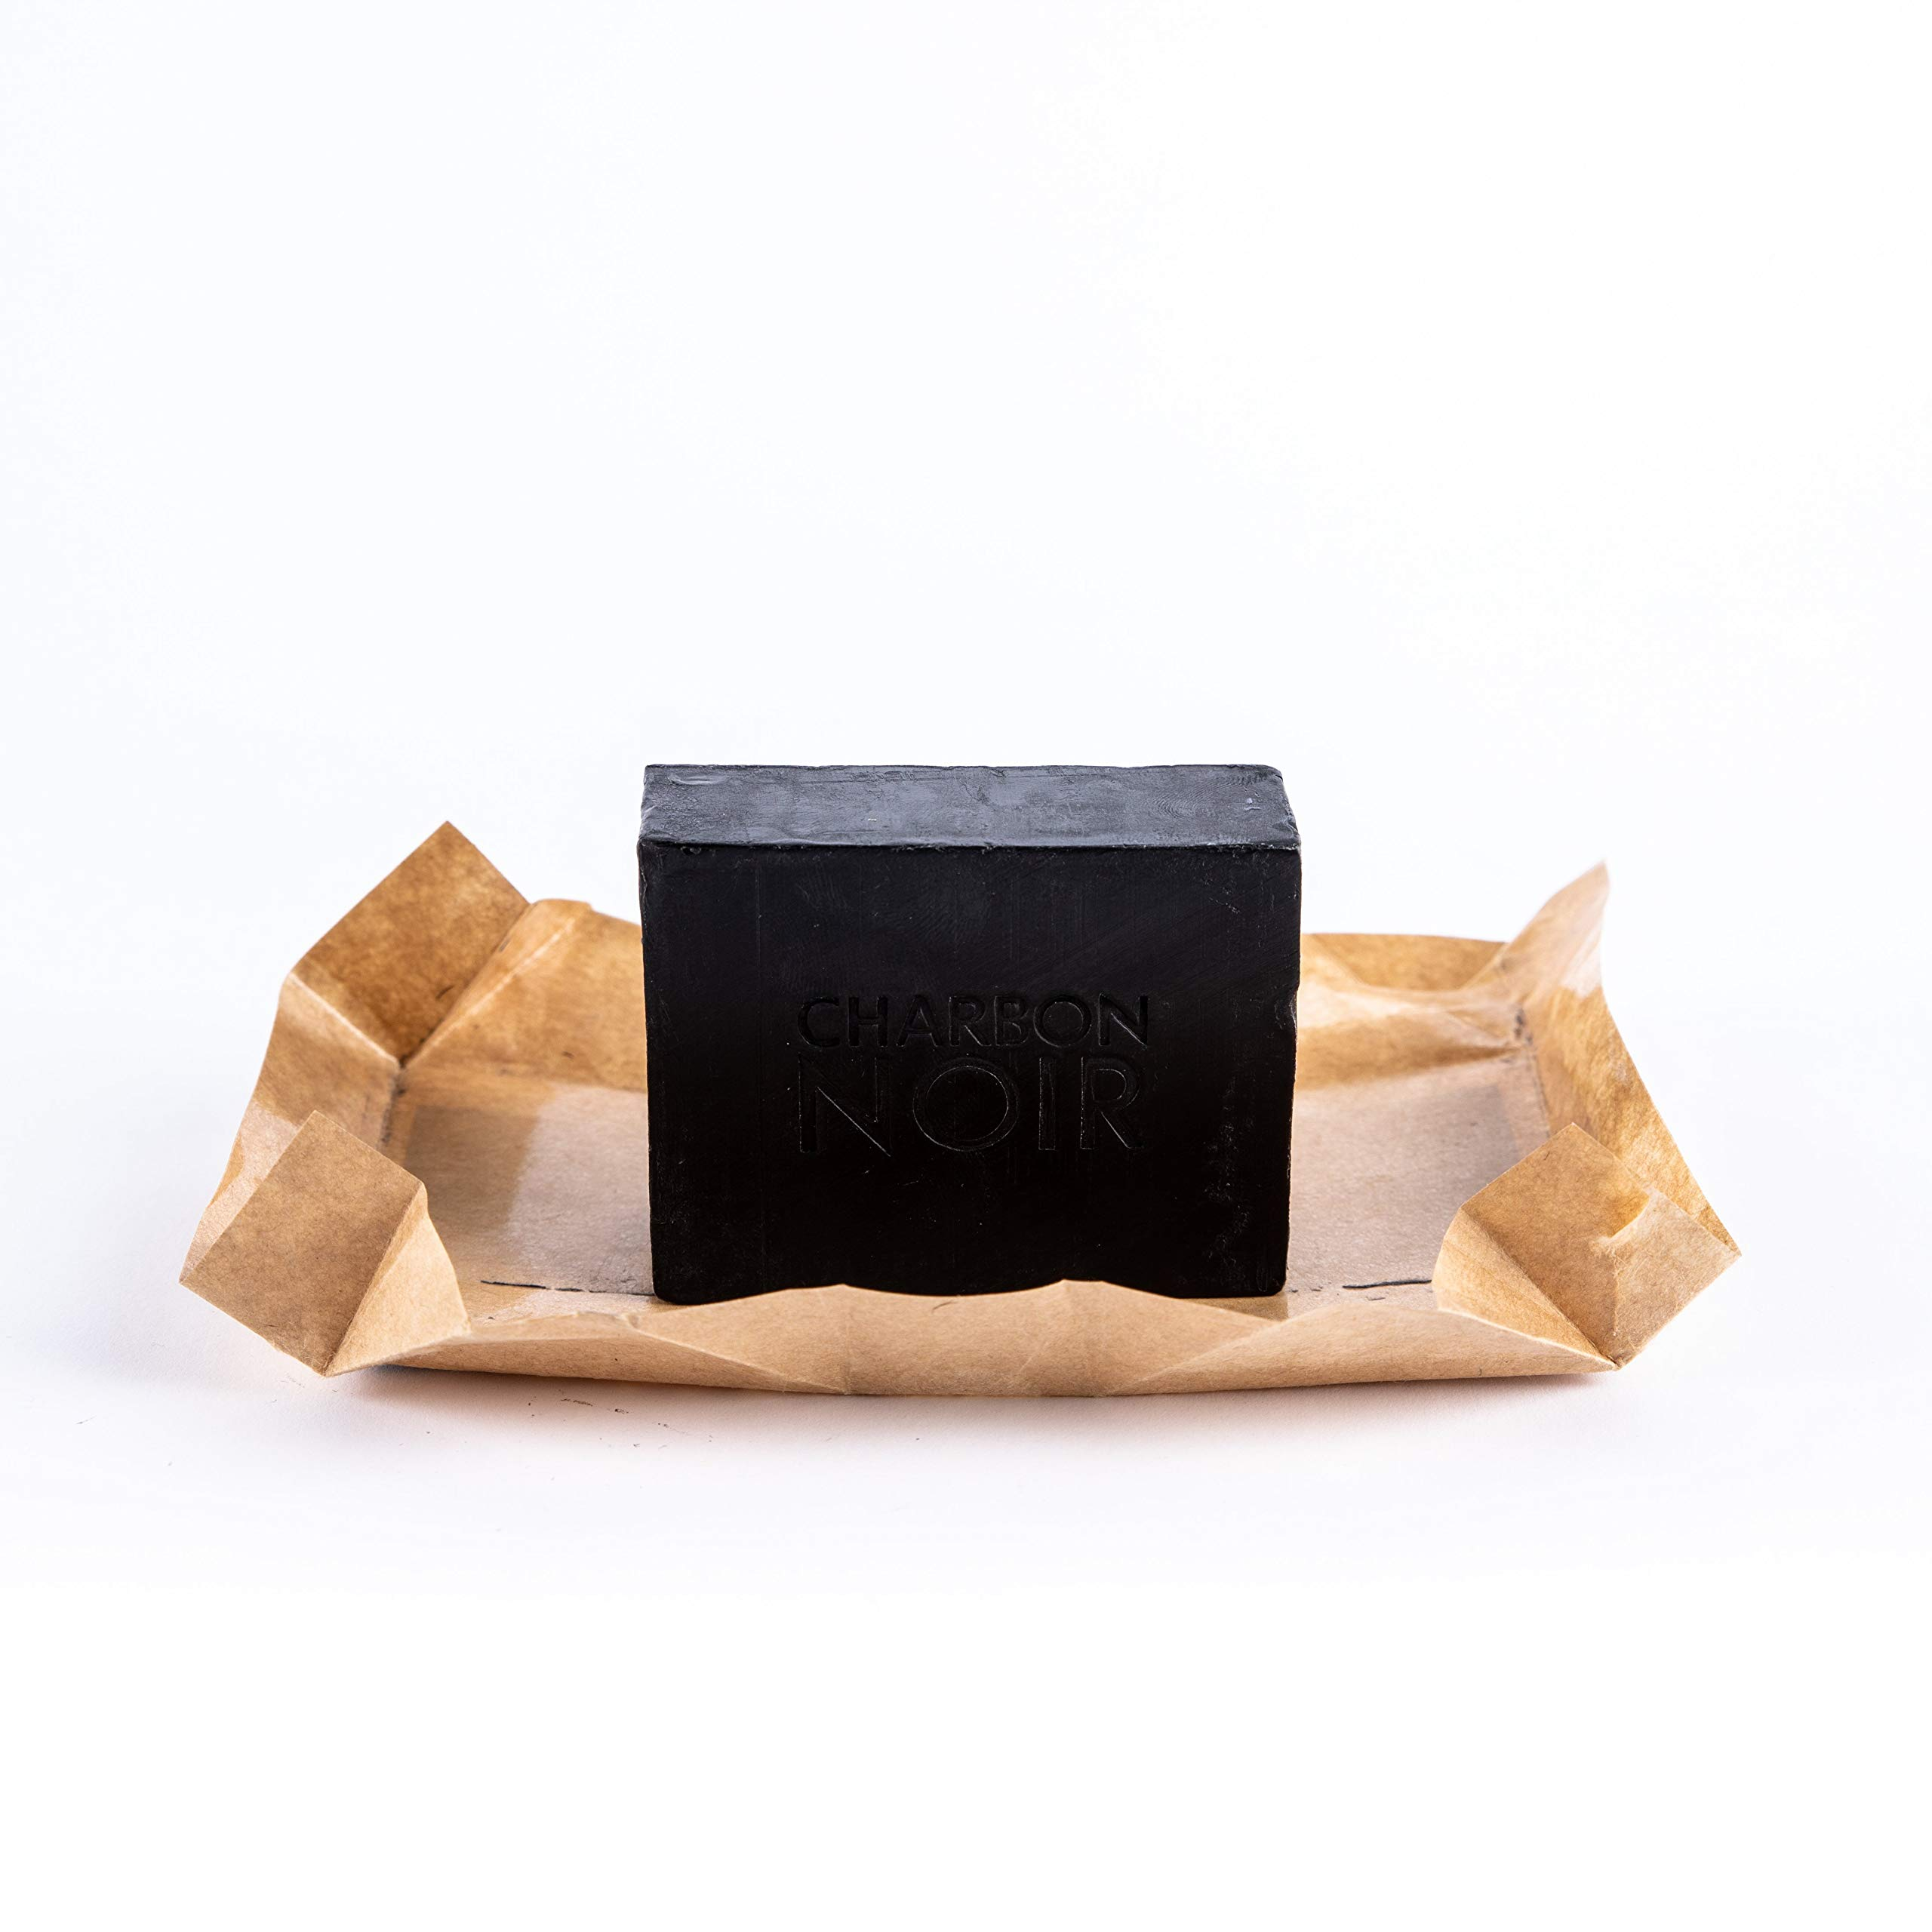 Charbon Noir Facial Bar Charcoal Soap | Activated Charcoal | Deep Cleansing | Eco-Friendly, Plastic-Free and Pet-Friendly - 150g/5,29oz (1 Bar)